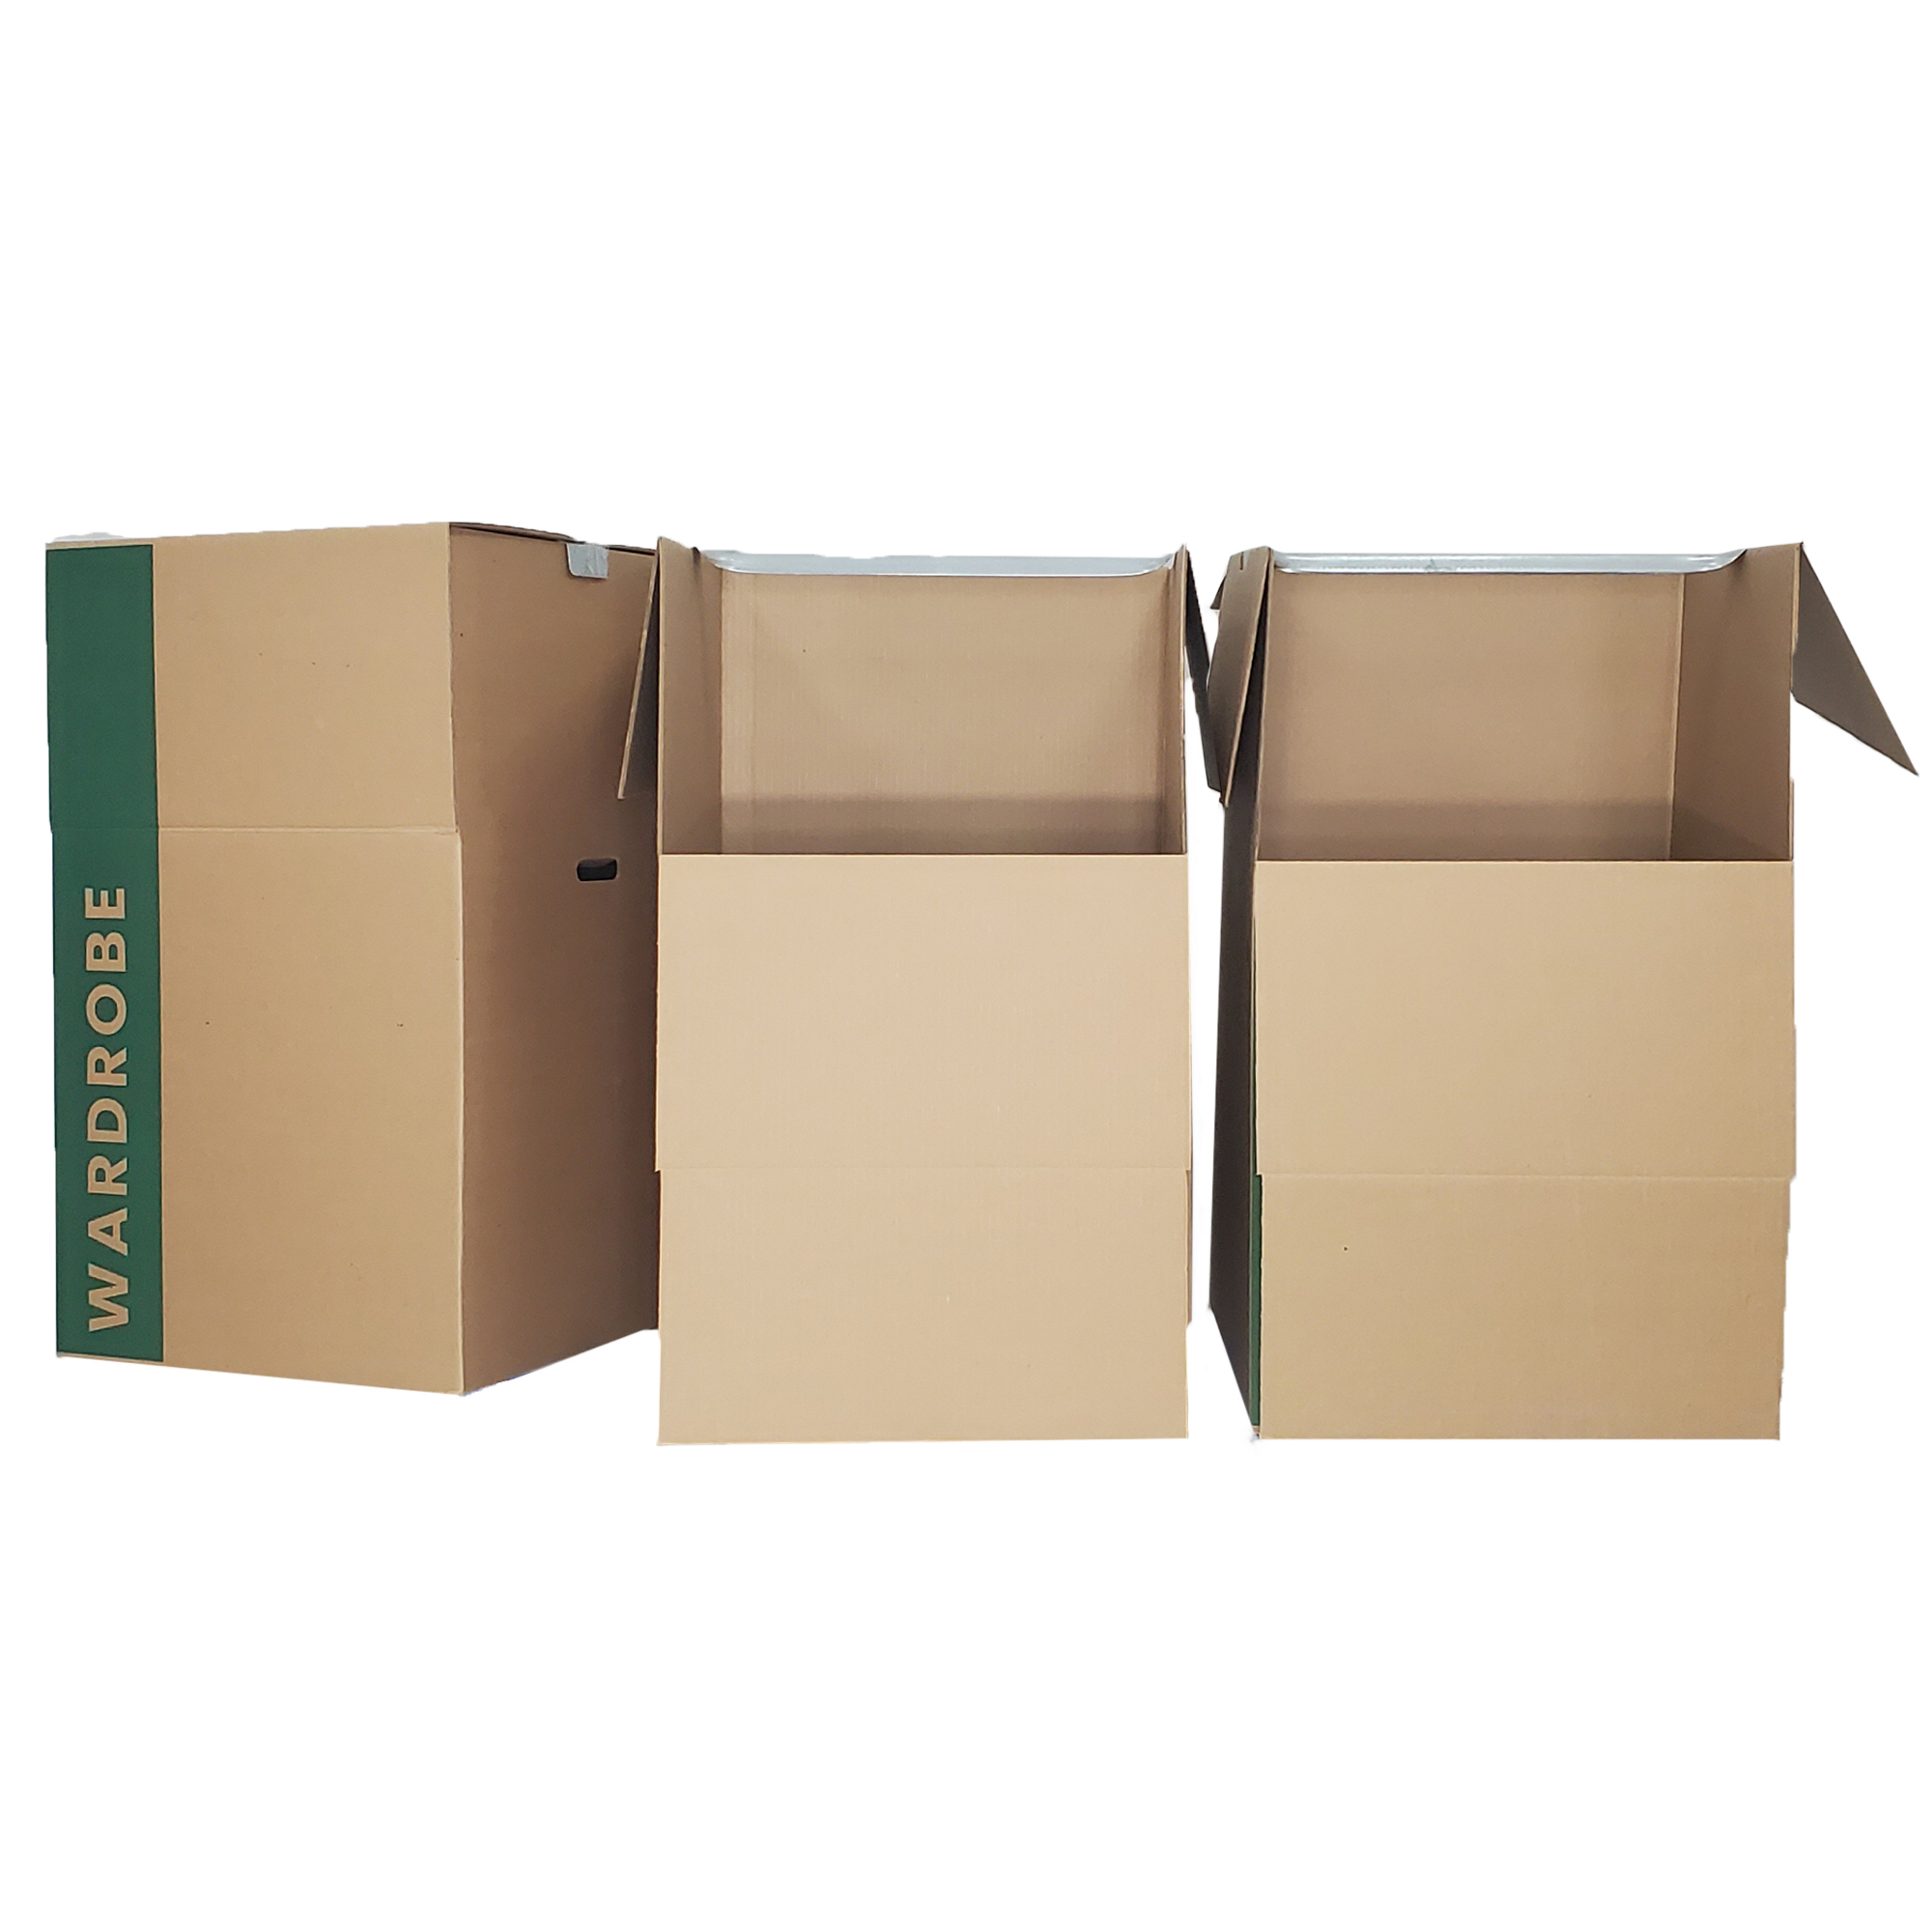 Wardrobe Box Kit